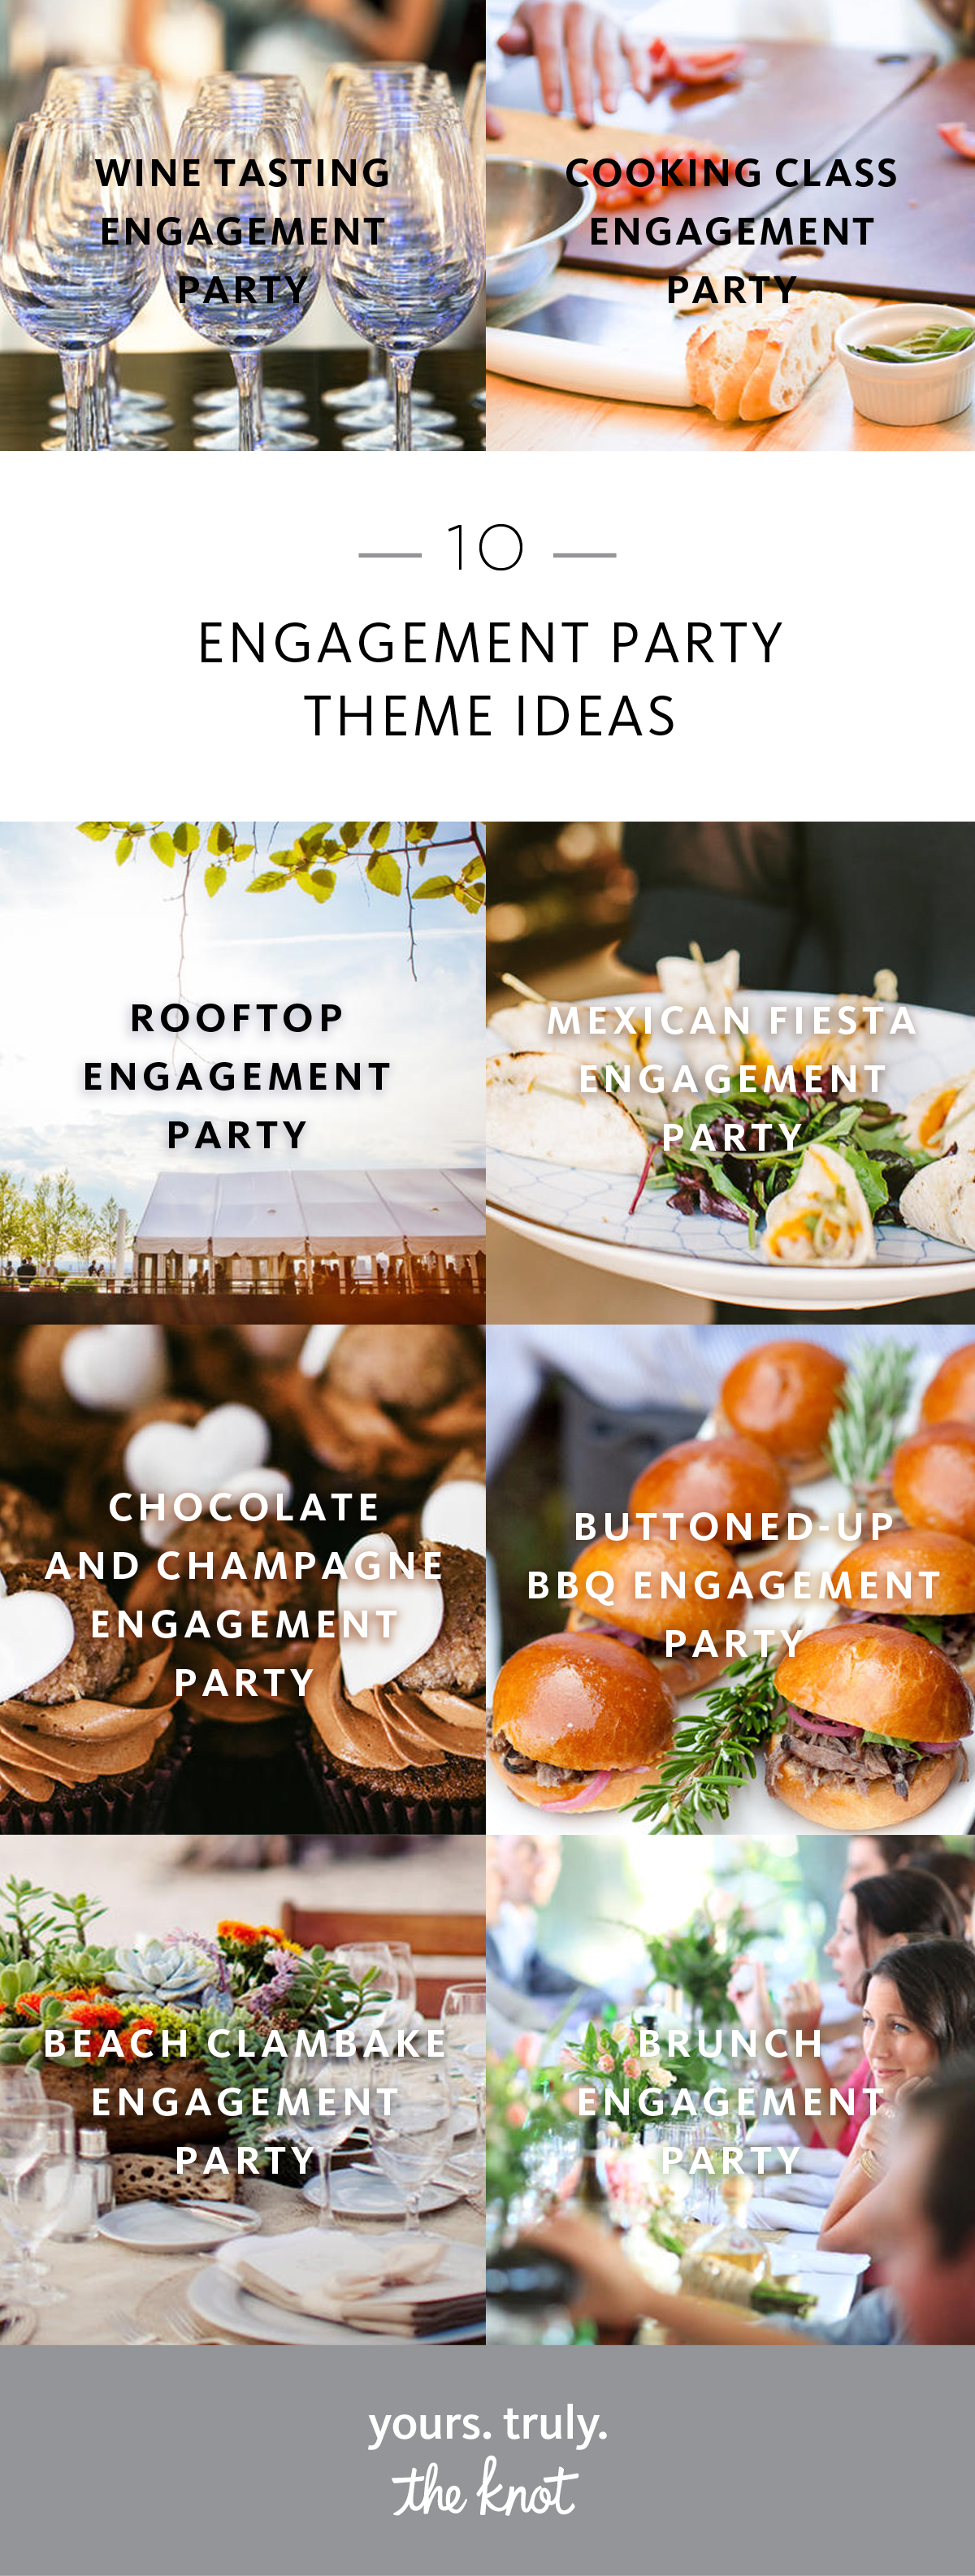 10 engagement party theme ideas | must-read wedding articles